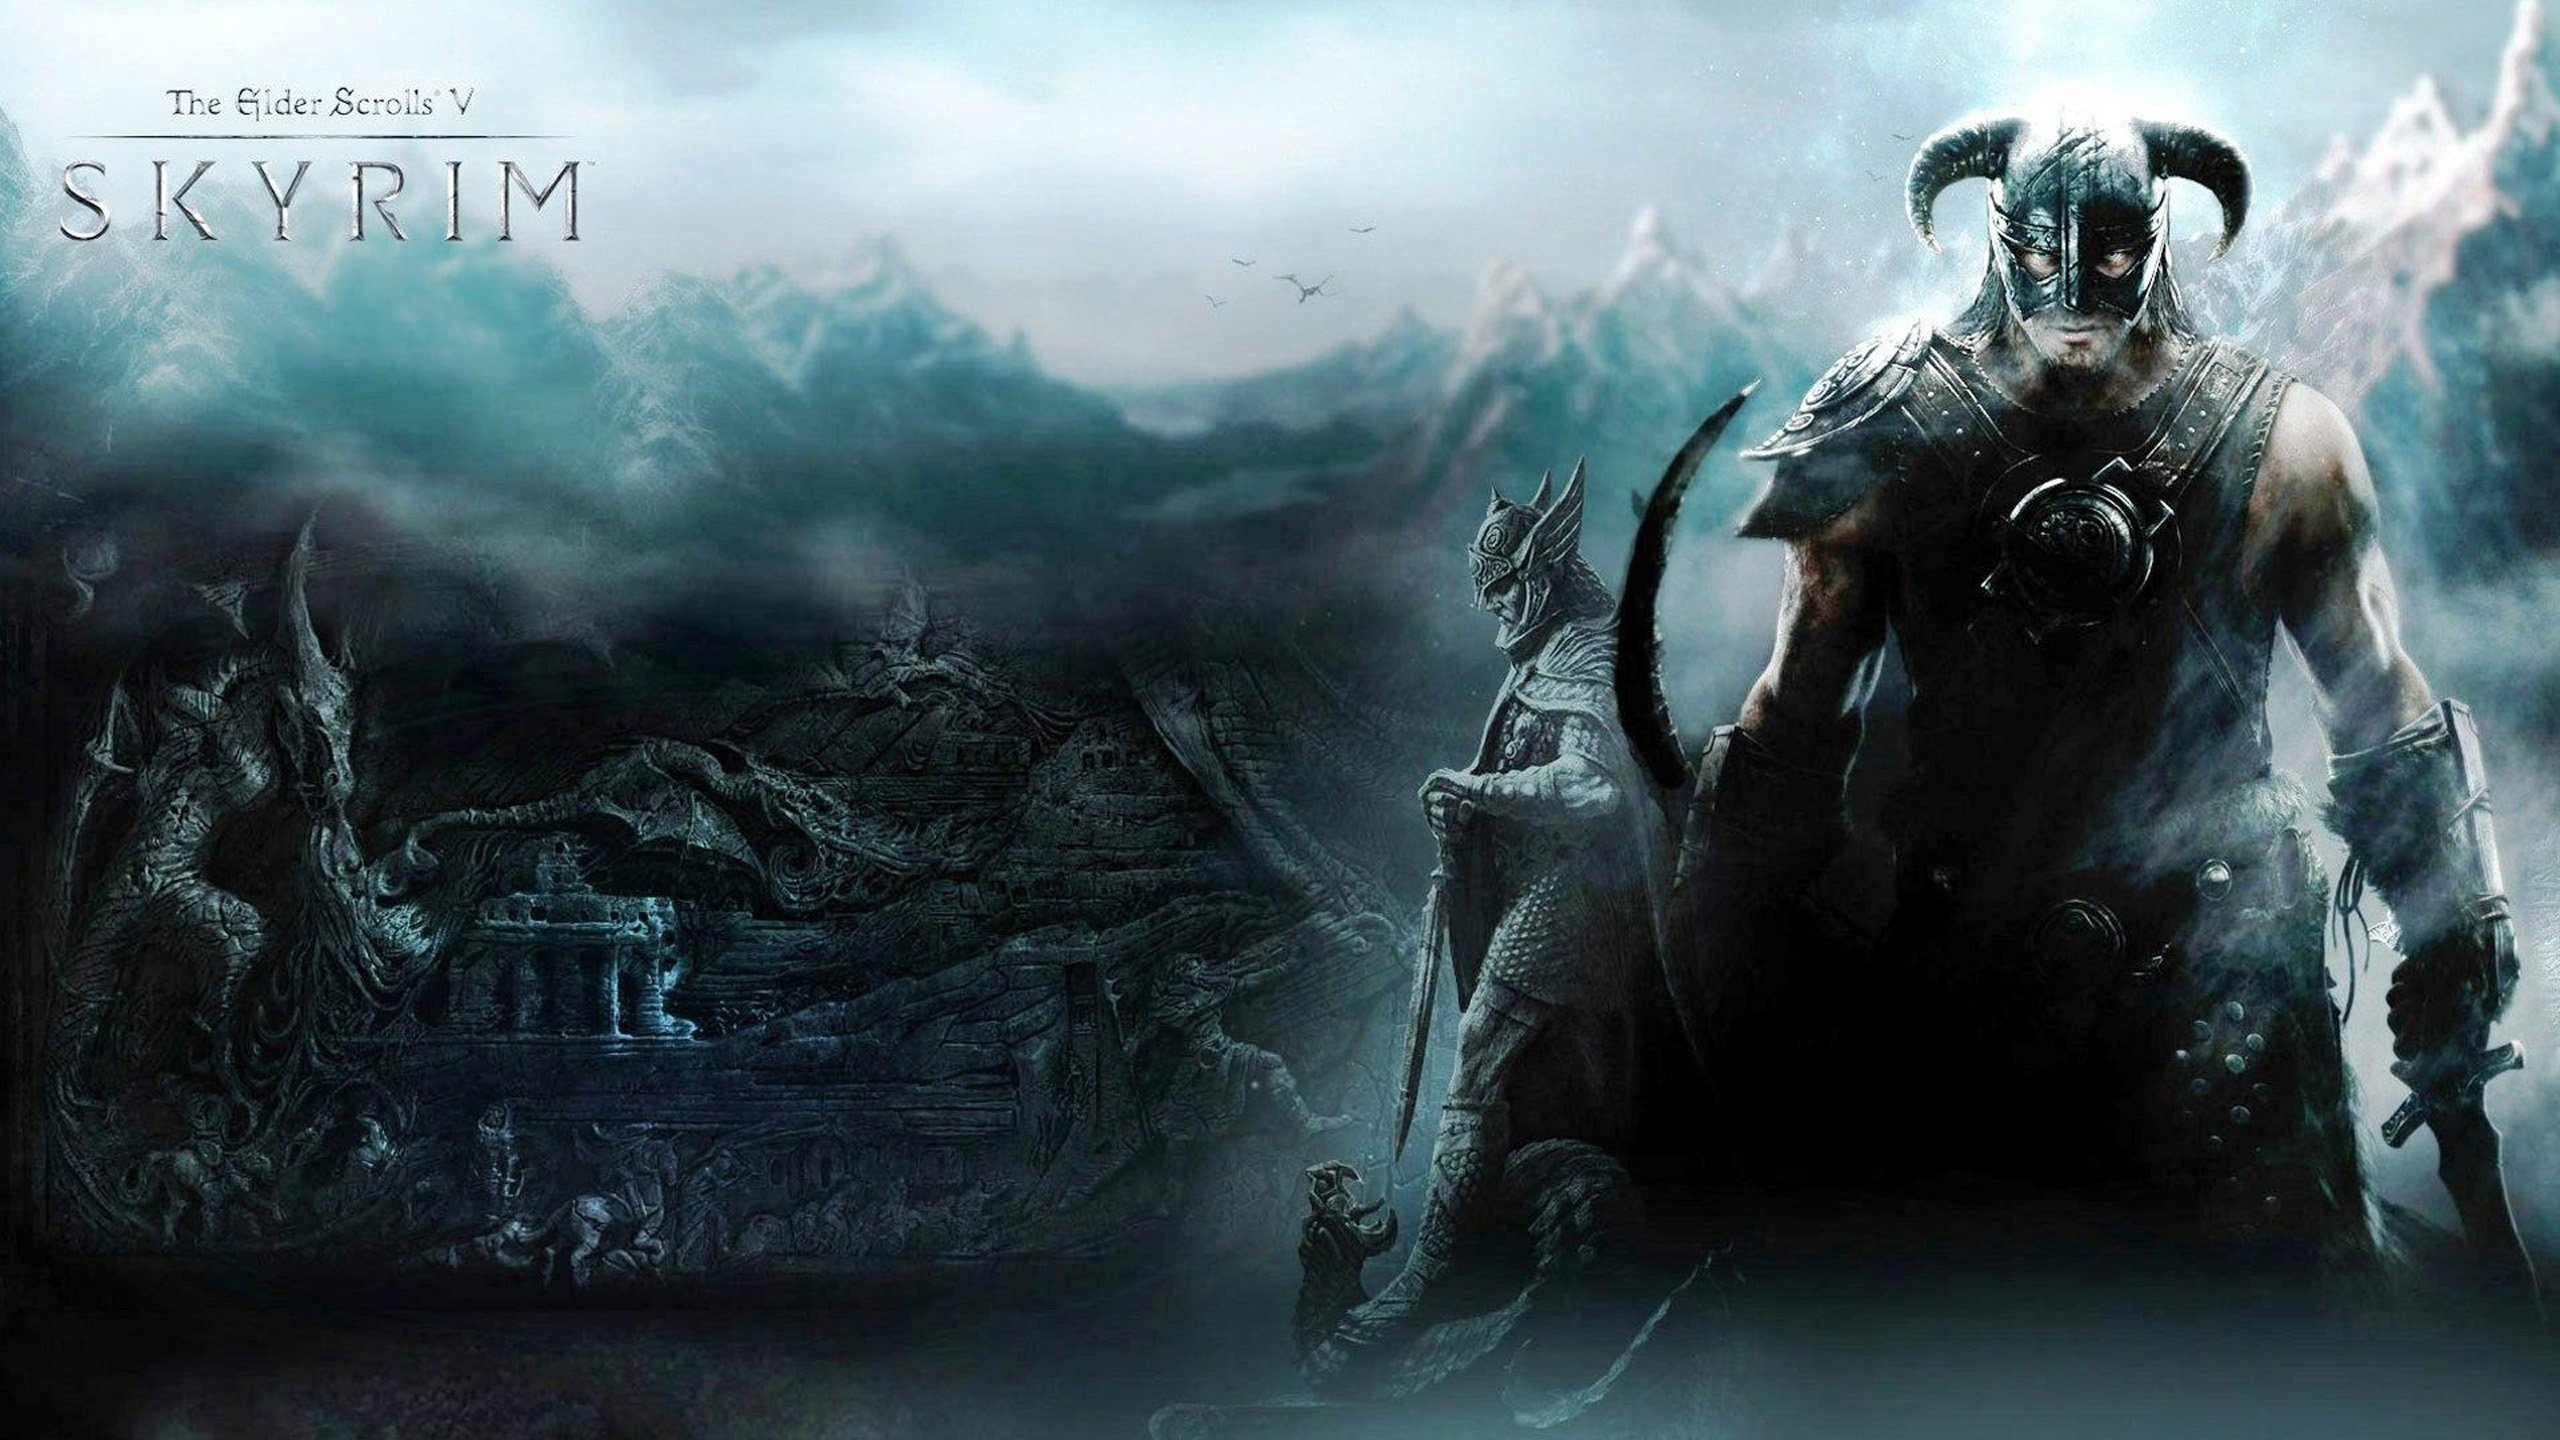 Best Video Game Wallpapers HD Amazing Video Game HD 2560x1440